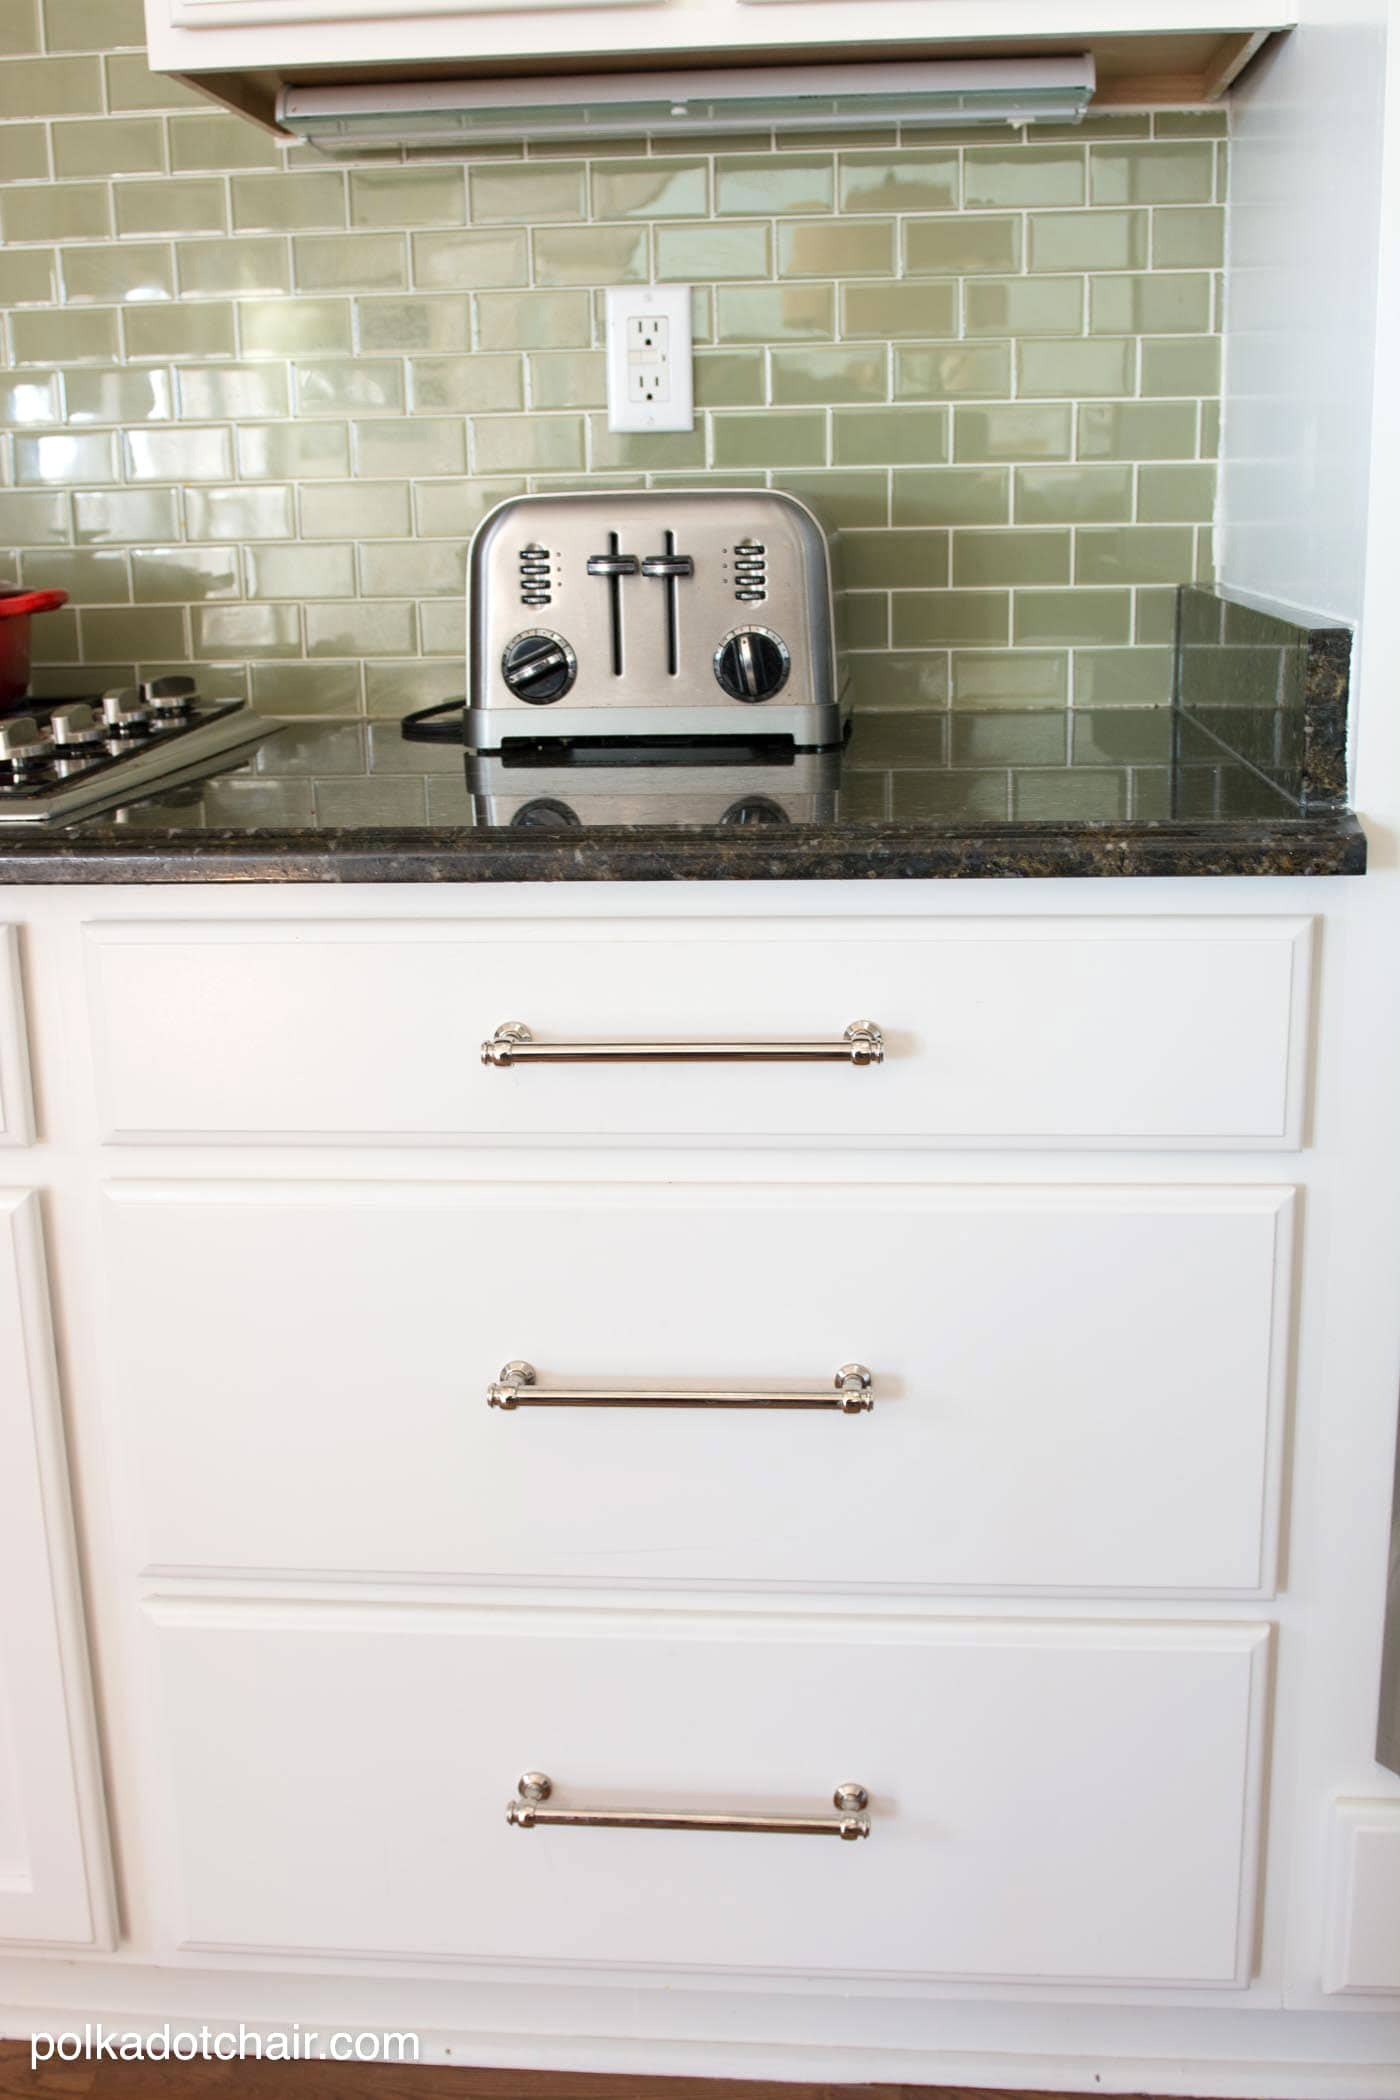 white kitchen cabinets ideas nook tables painted cabinet and makeover reveal the green tile backsplash before after photos of a that had it s